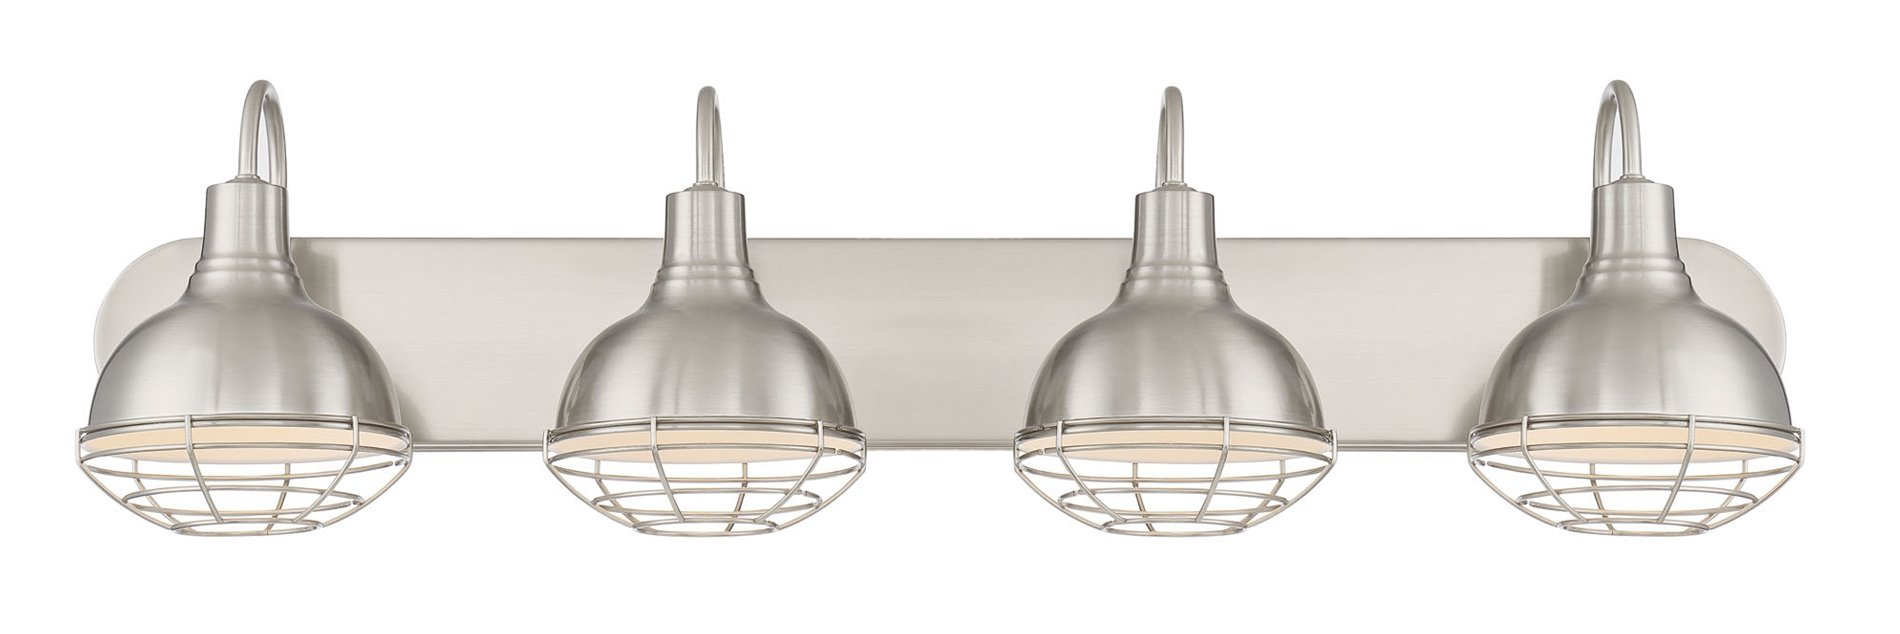 Revel Liberty 36'' 4-Light Industrial Vanity/Bathroom Light, Brushed Nickel Finish